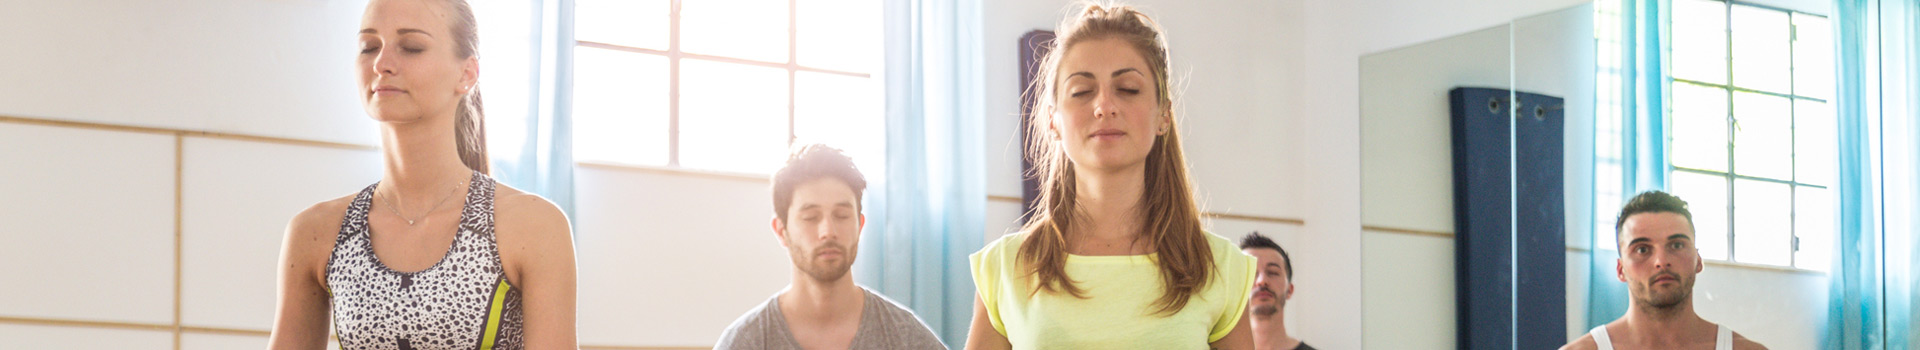 yoga-instructors-wellbeing insurance